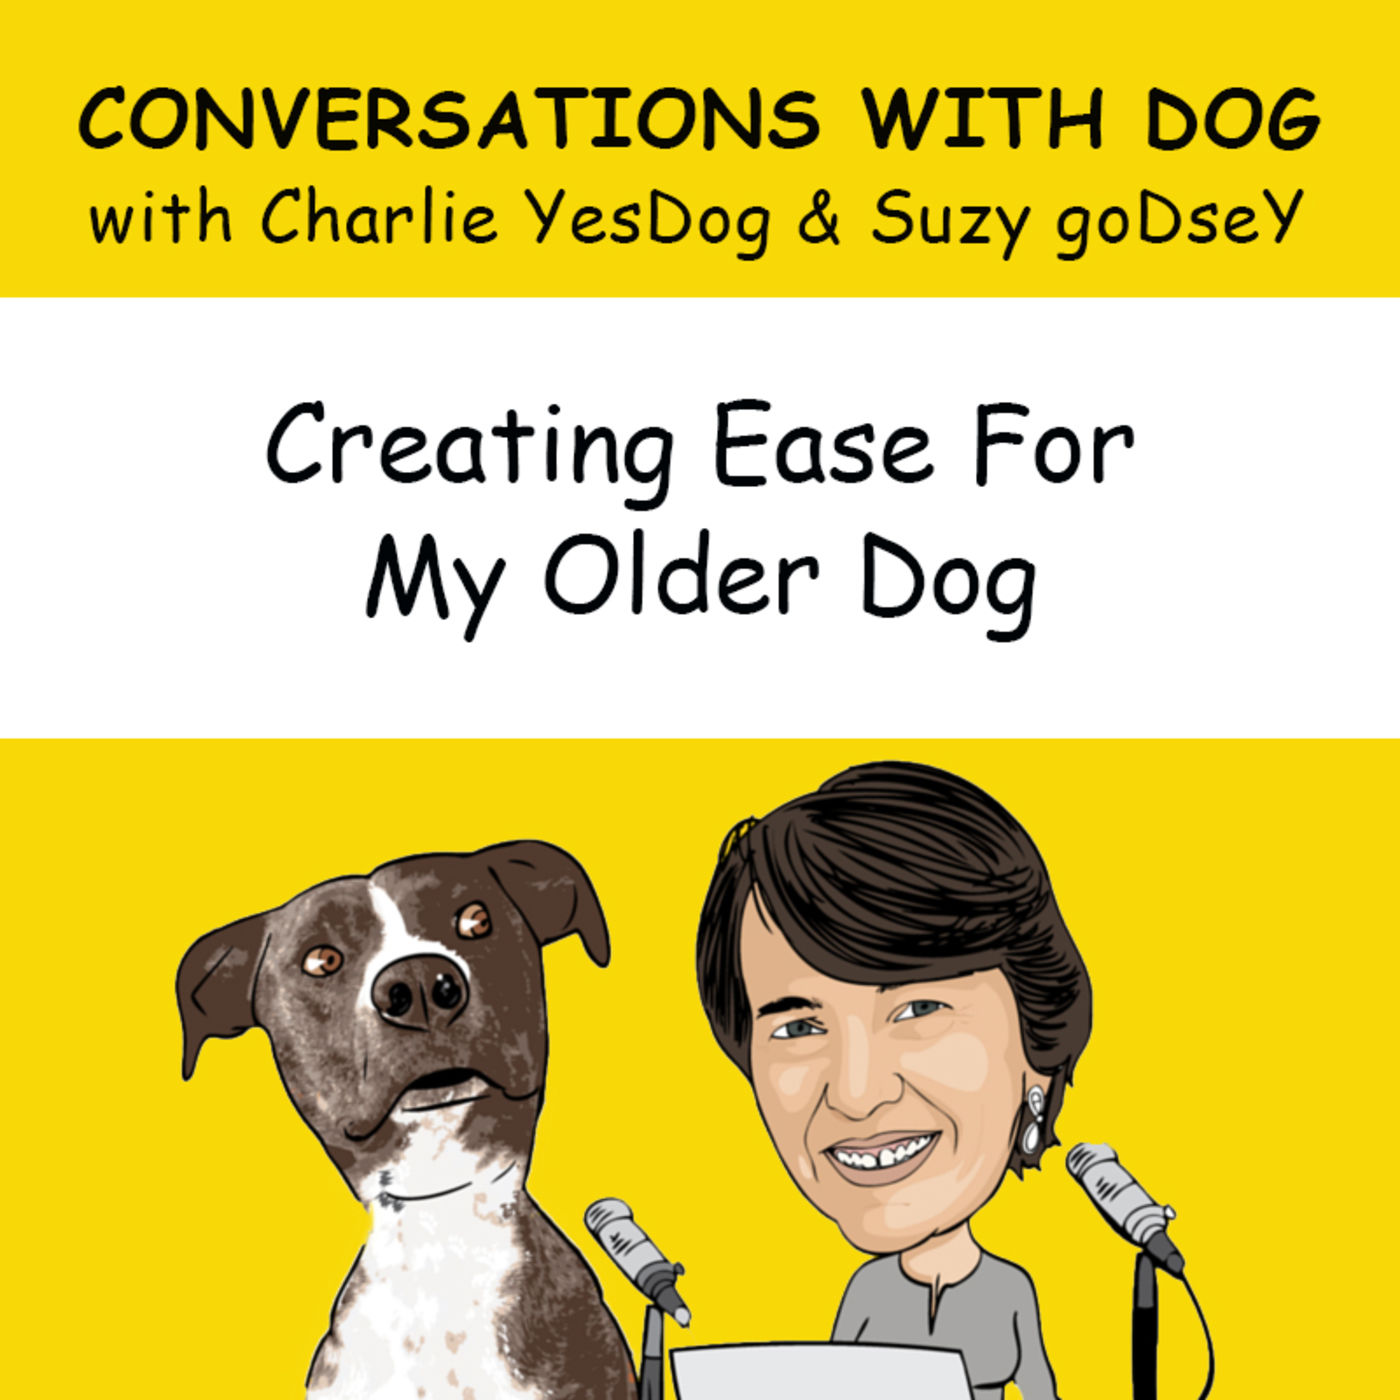 Creating Ease For My Older Dog